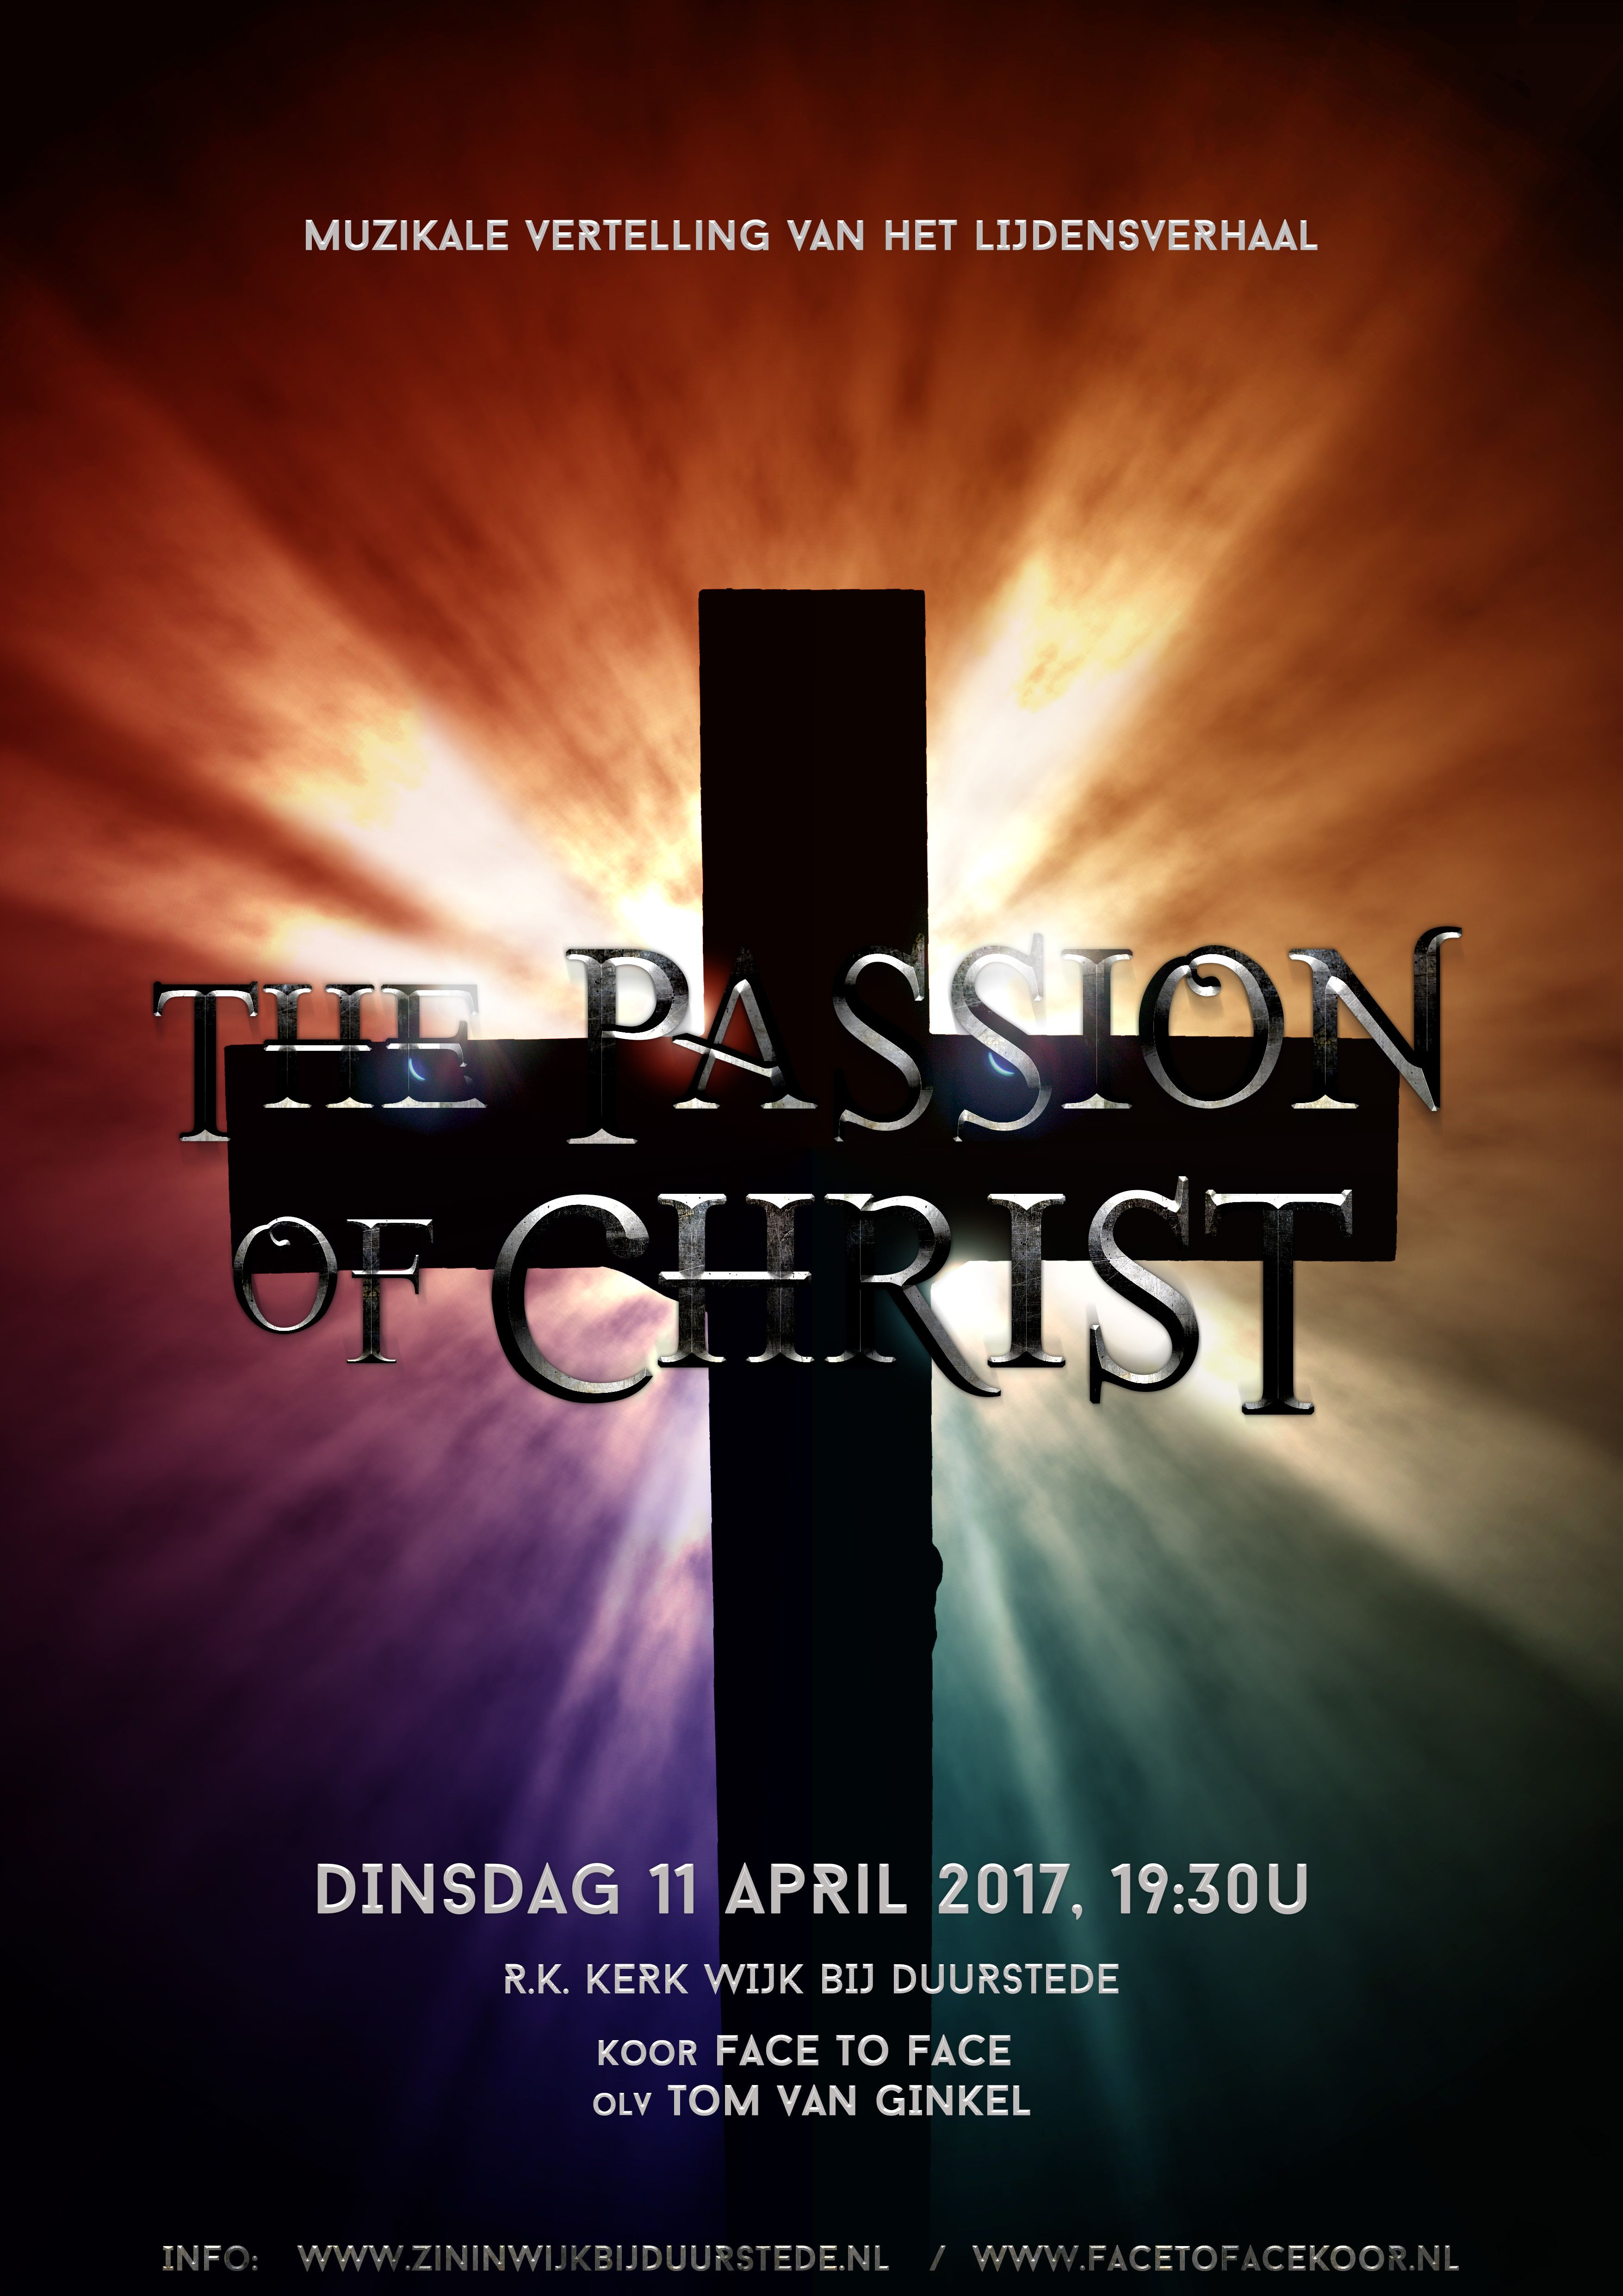 The Passion of Christ 27 maart 2018